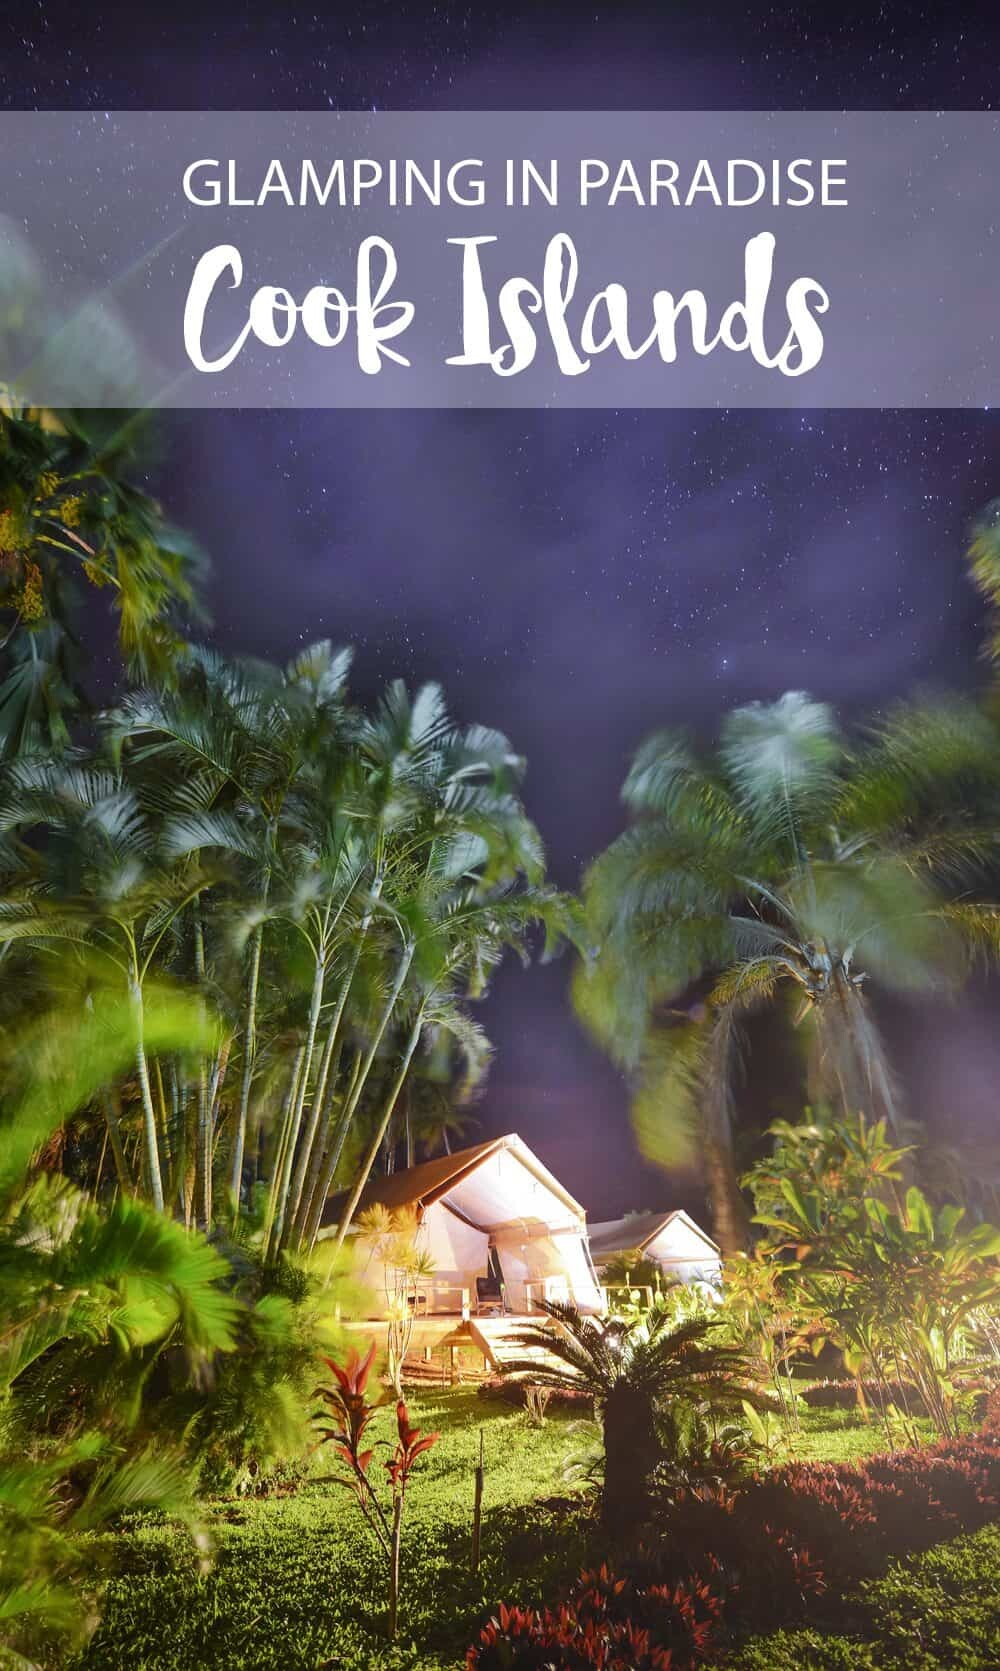 Glamping in the Cook Islands - find out where on The Wandering Lens here - http://tinyurl.com/jzrnrk5